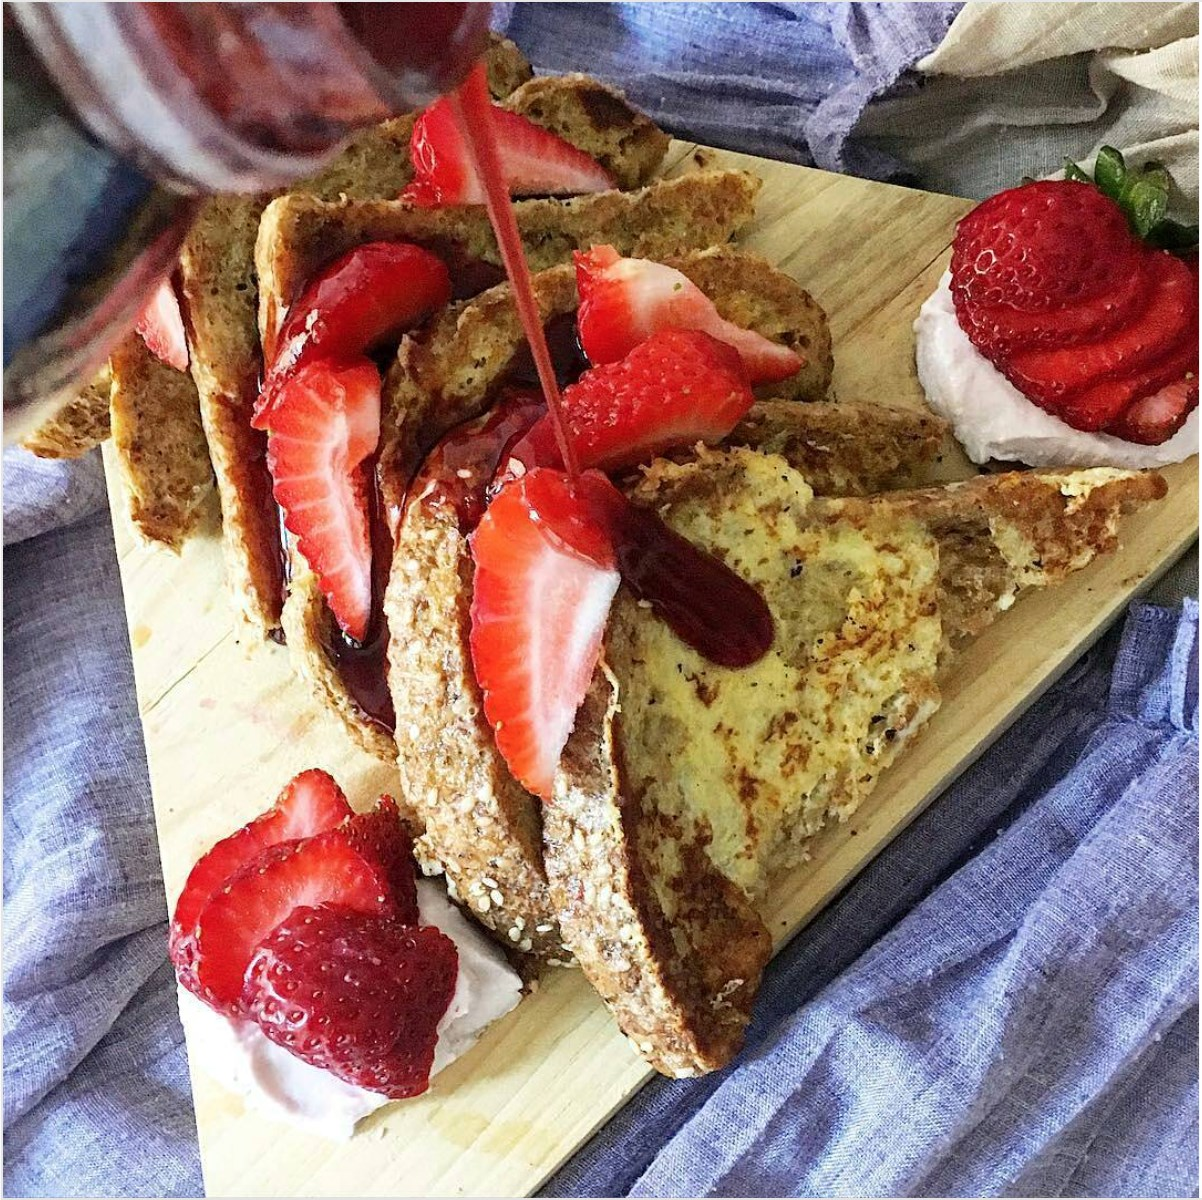 Strawberry French Toast made with Smoothie Mix